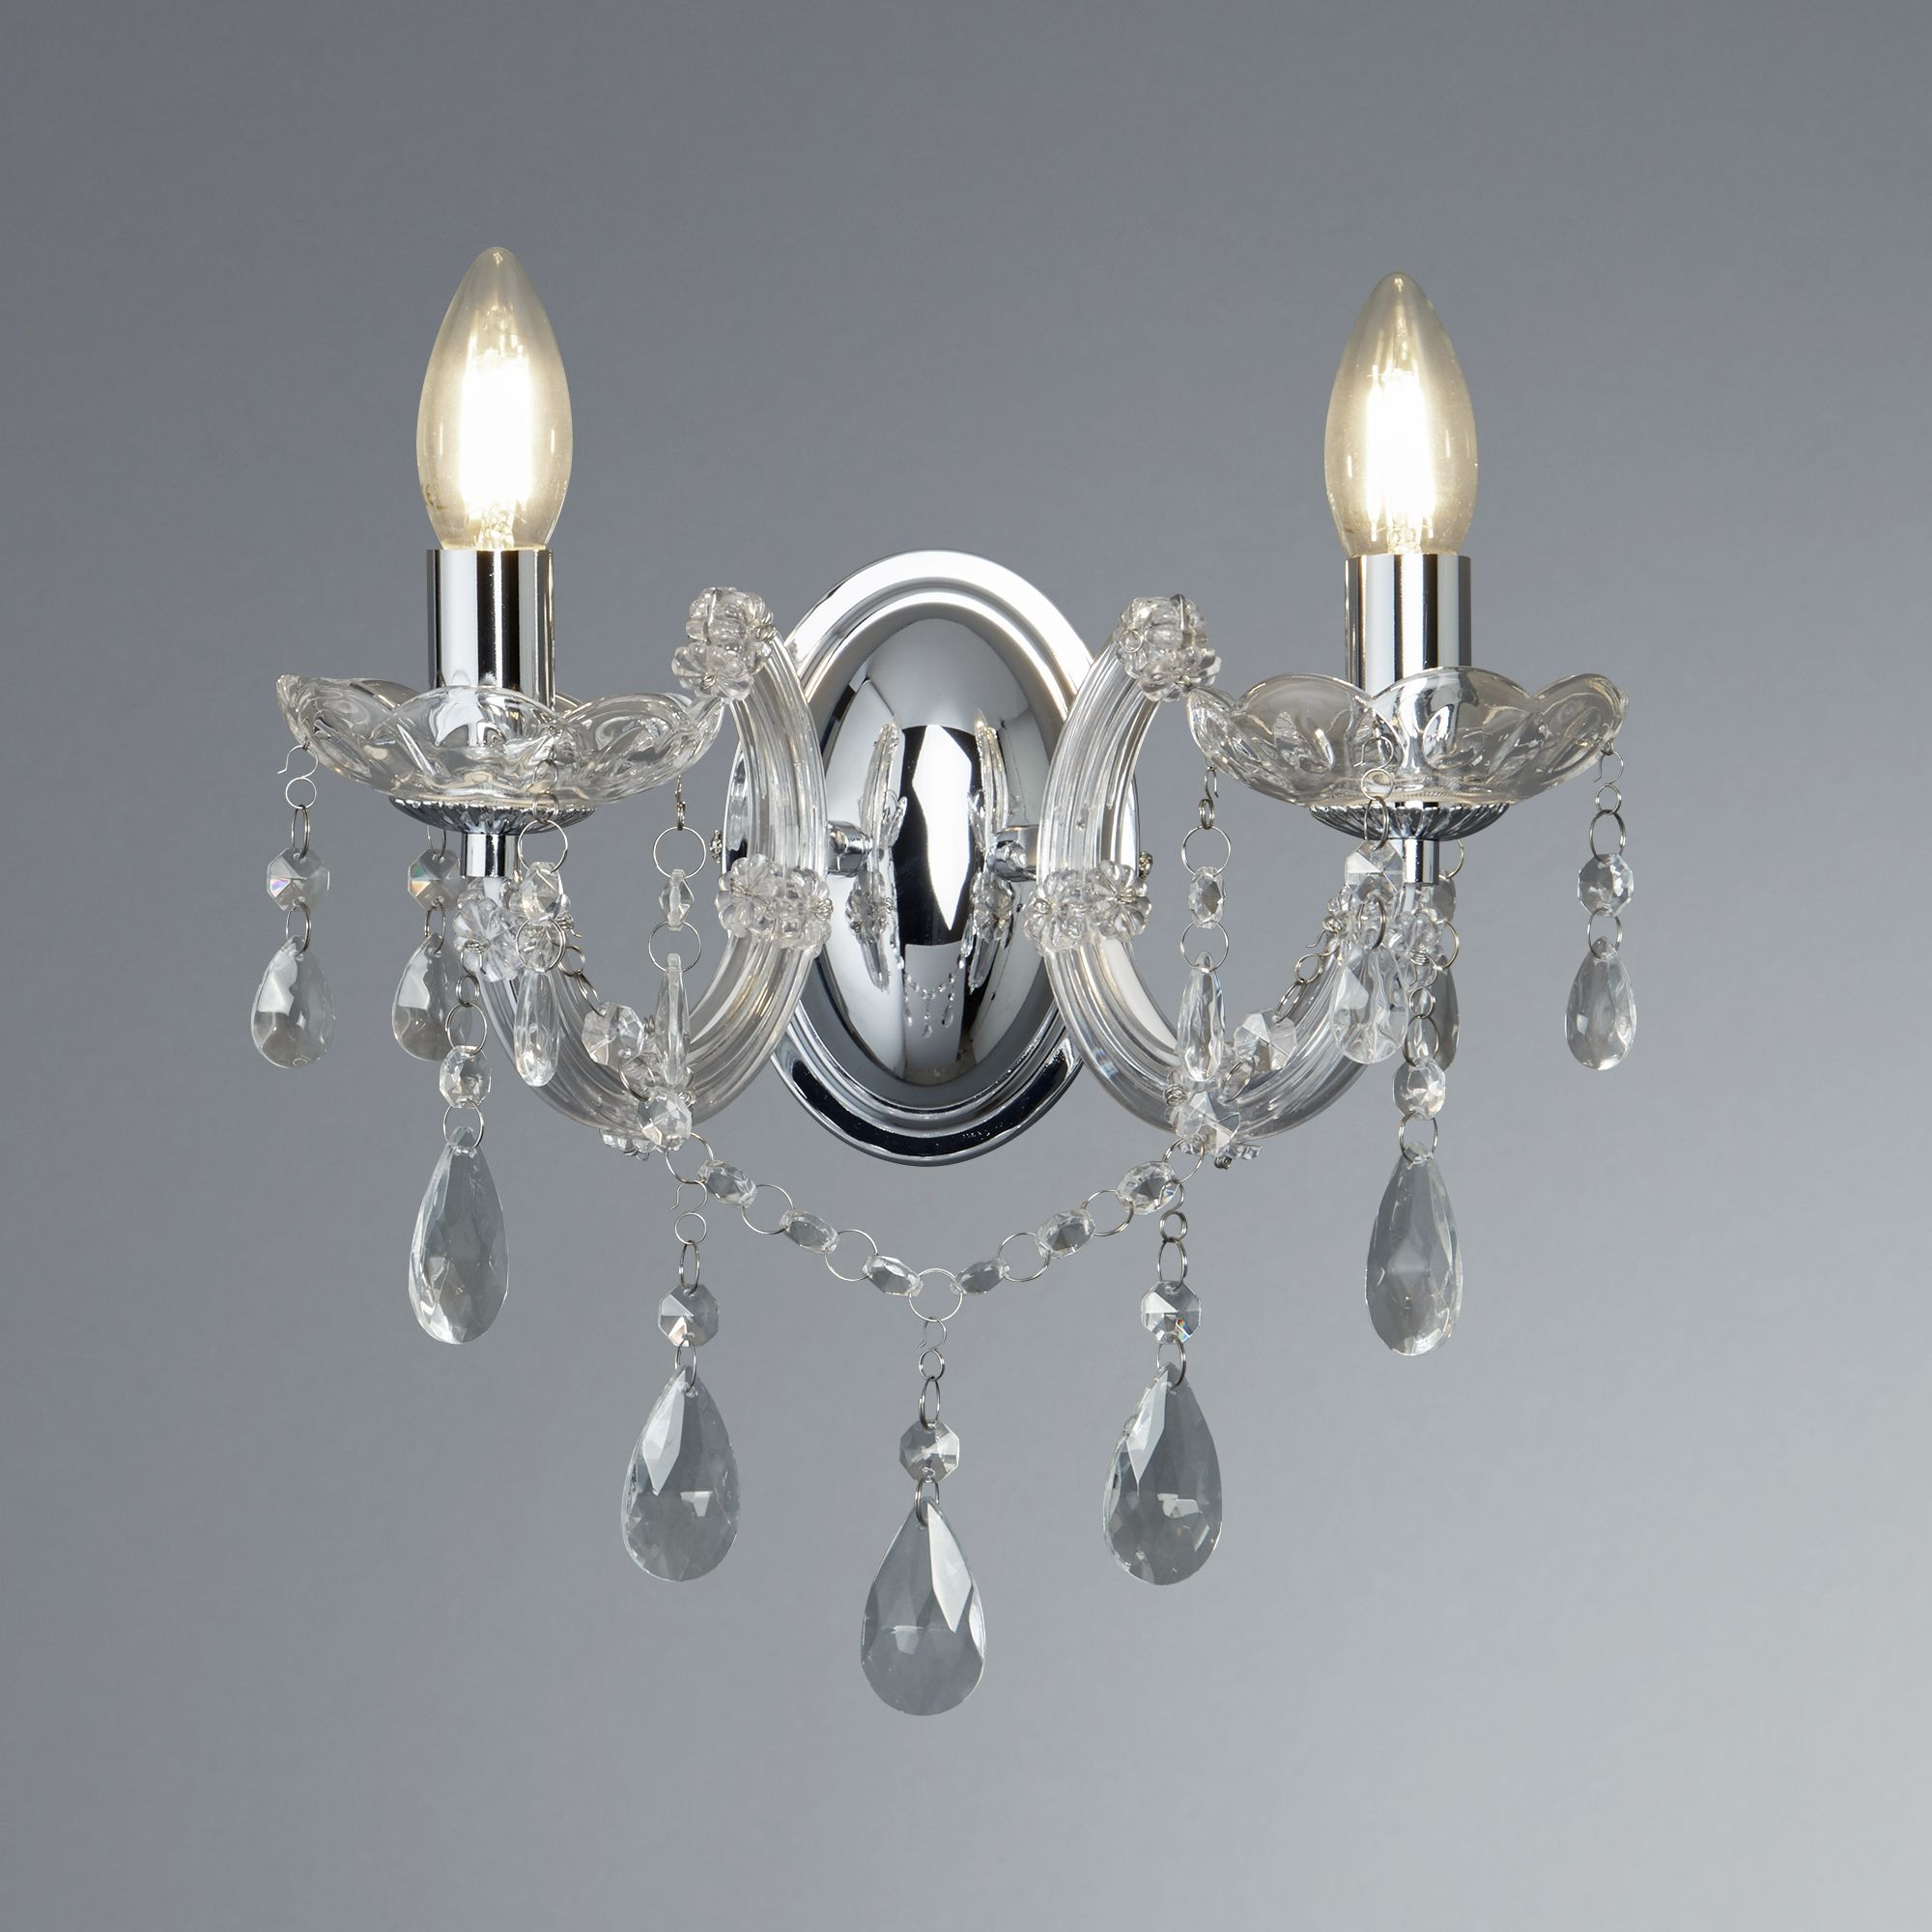 Details about Marie Therese 2 Lights Black & Chrome Wall Bracket Chandelier Light